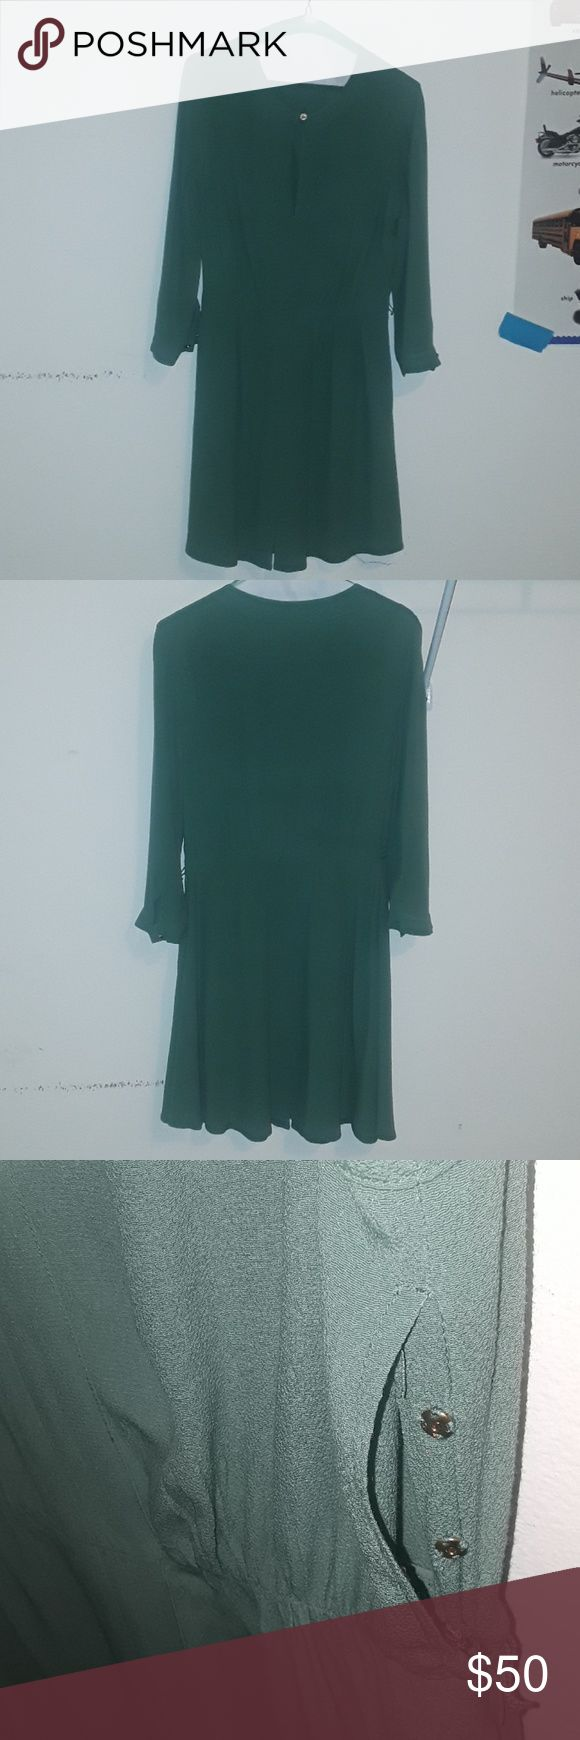 EUC Juicy Couture dress This dress us too small for me. The belt is missing.In excellent used condition. No rips, tears, or stains.This dress is so pretty in person. The camera did not capture the unique shade of green of this dress. I already dry cleaned the dress. This dress can be worn to work, holiday event, or for a night out. And boots and heels would be the perfect footwear accessory. Price is Firm. juicy couture Dresses Midi